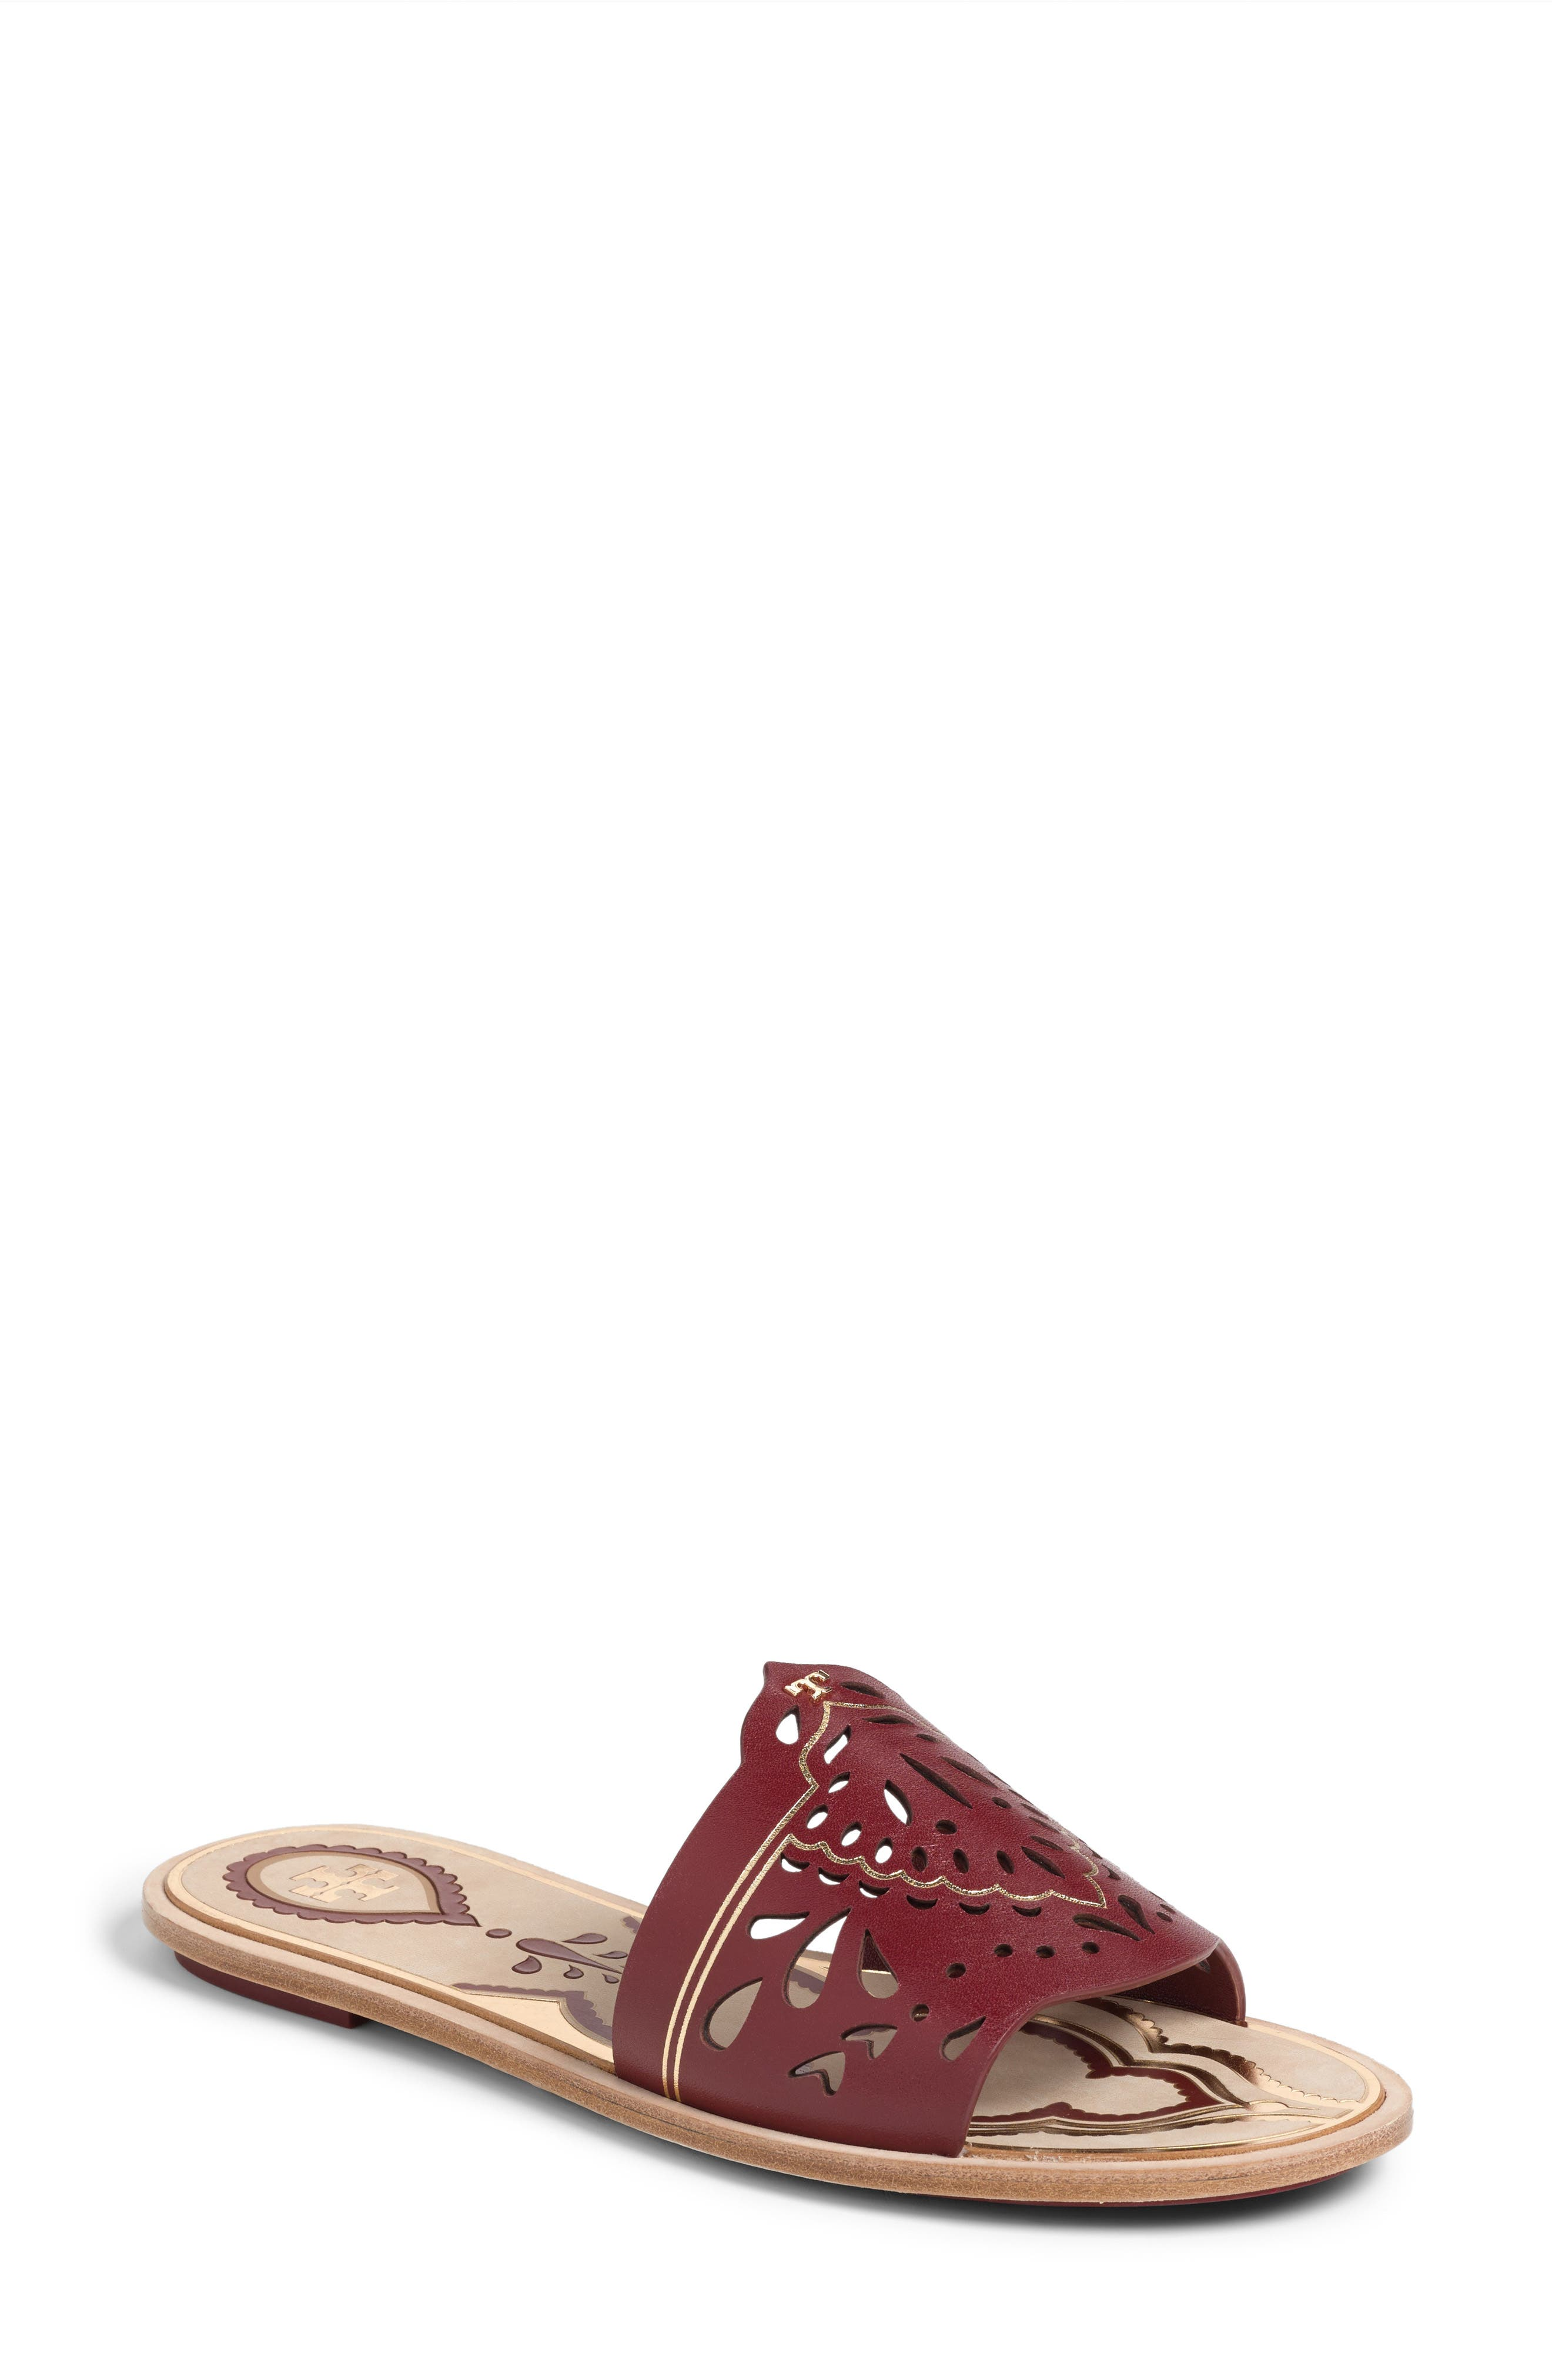 Tory Burch Annika Slide Sandal (Women)